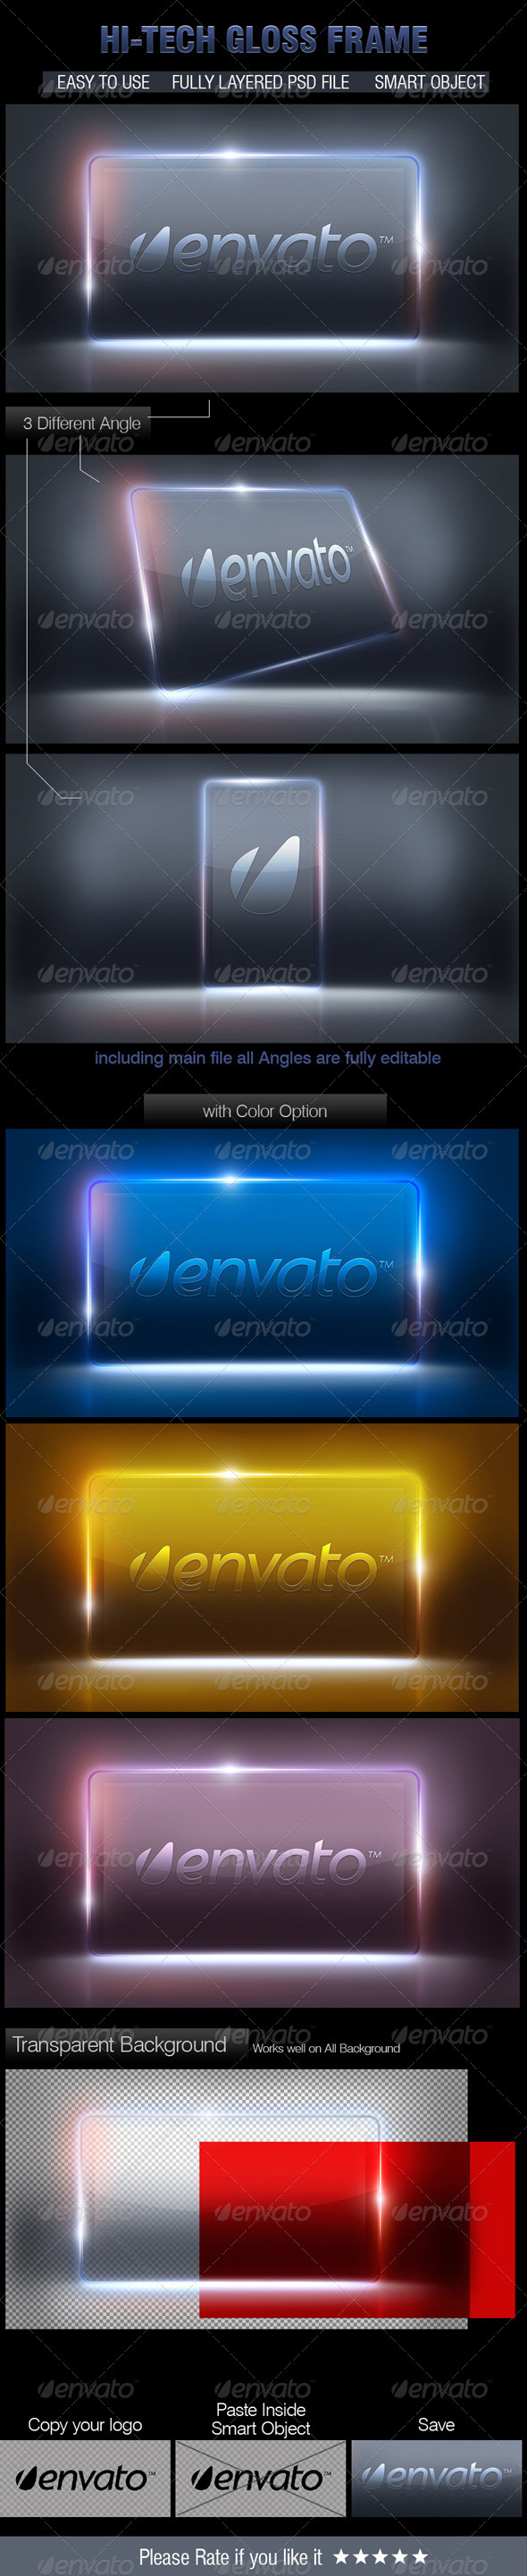 GraphicRiver Hi Finished Glass Frame 2674505